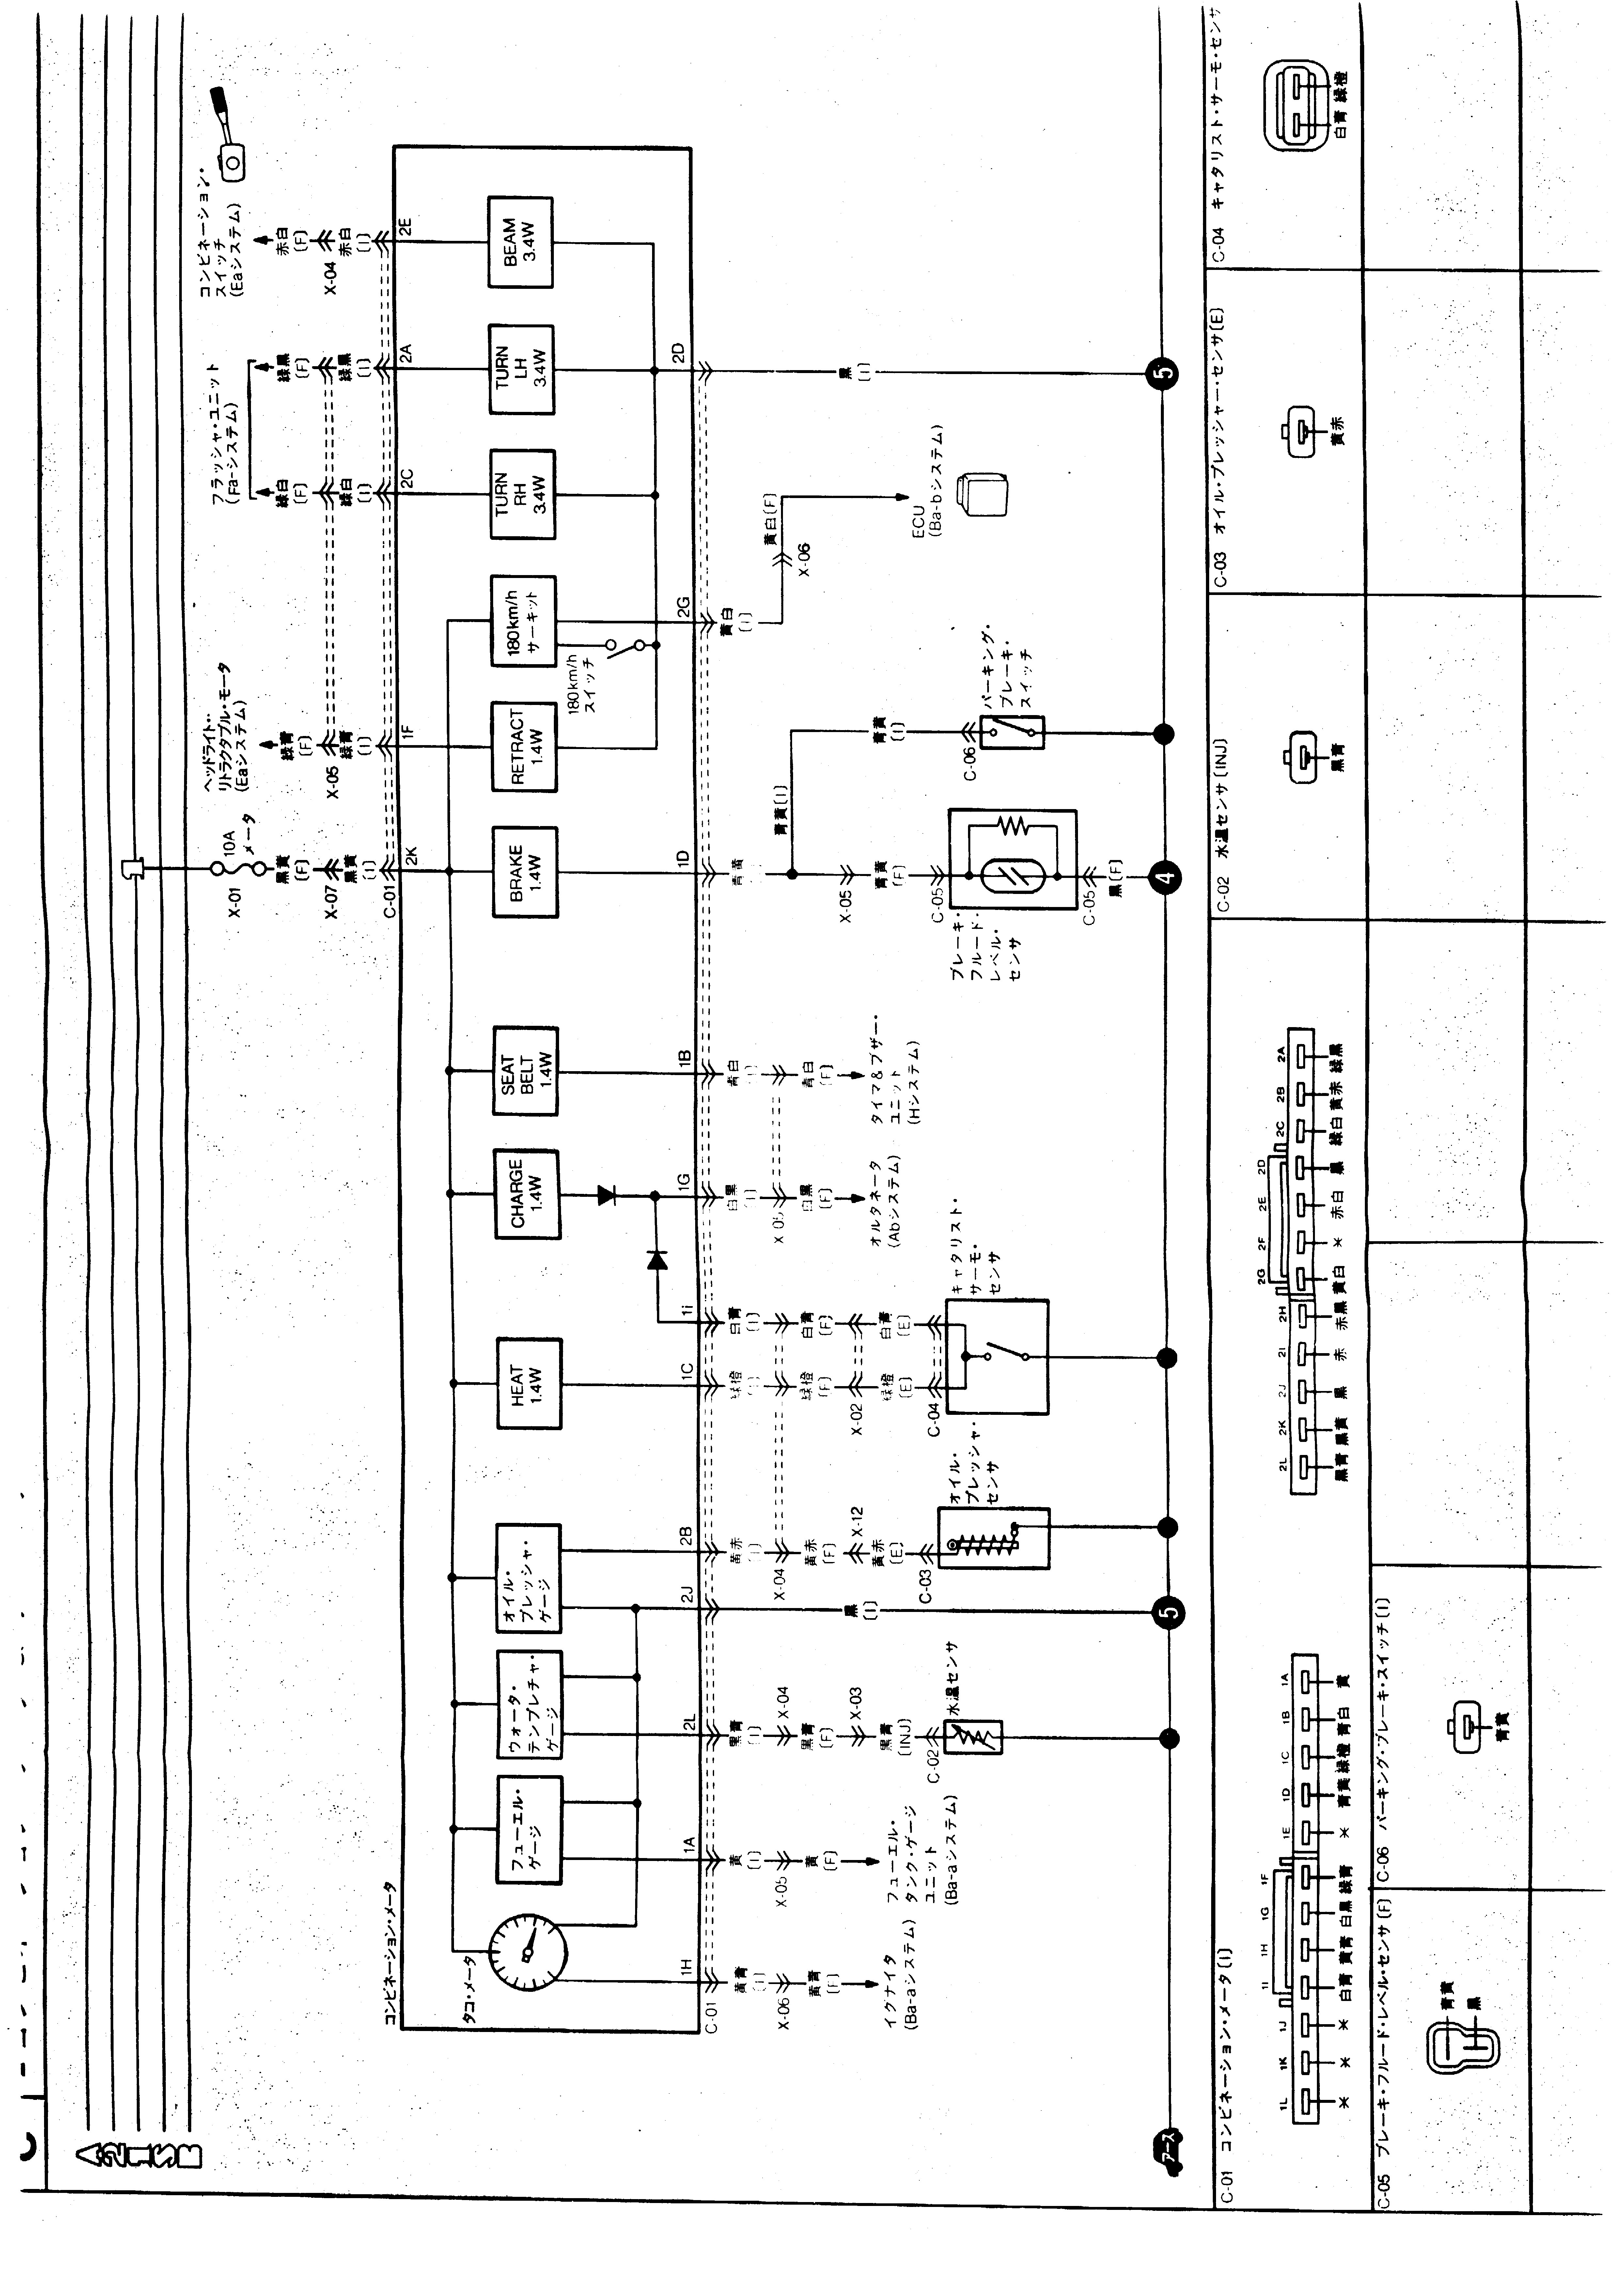 Japan Wiring Diagram, Japan, Free Engine Image For User